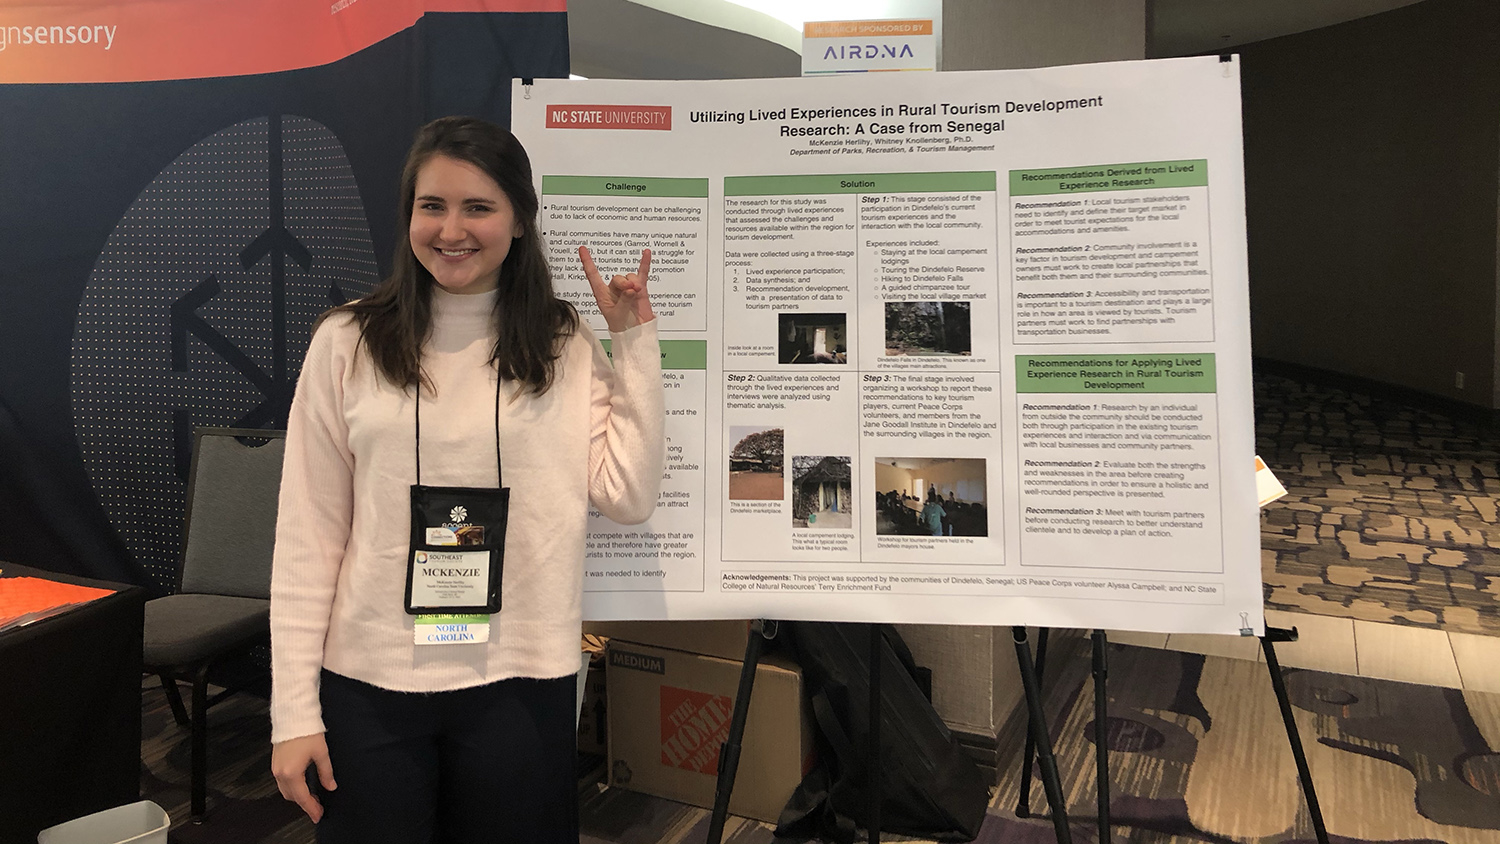 McKenzie Herlihy - Parks, Recreation, and Tourism Management at NC State University